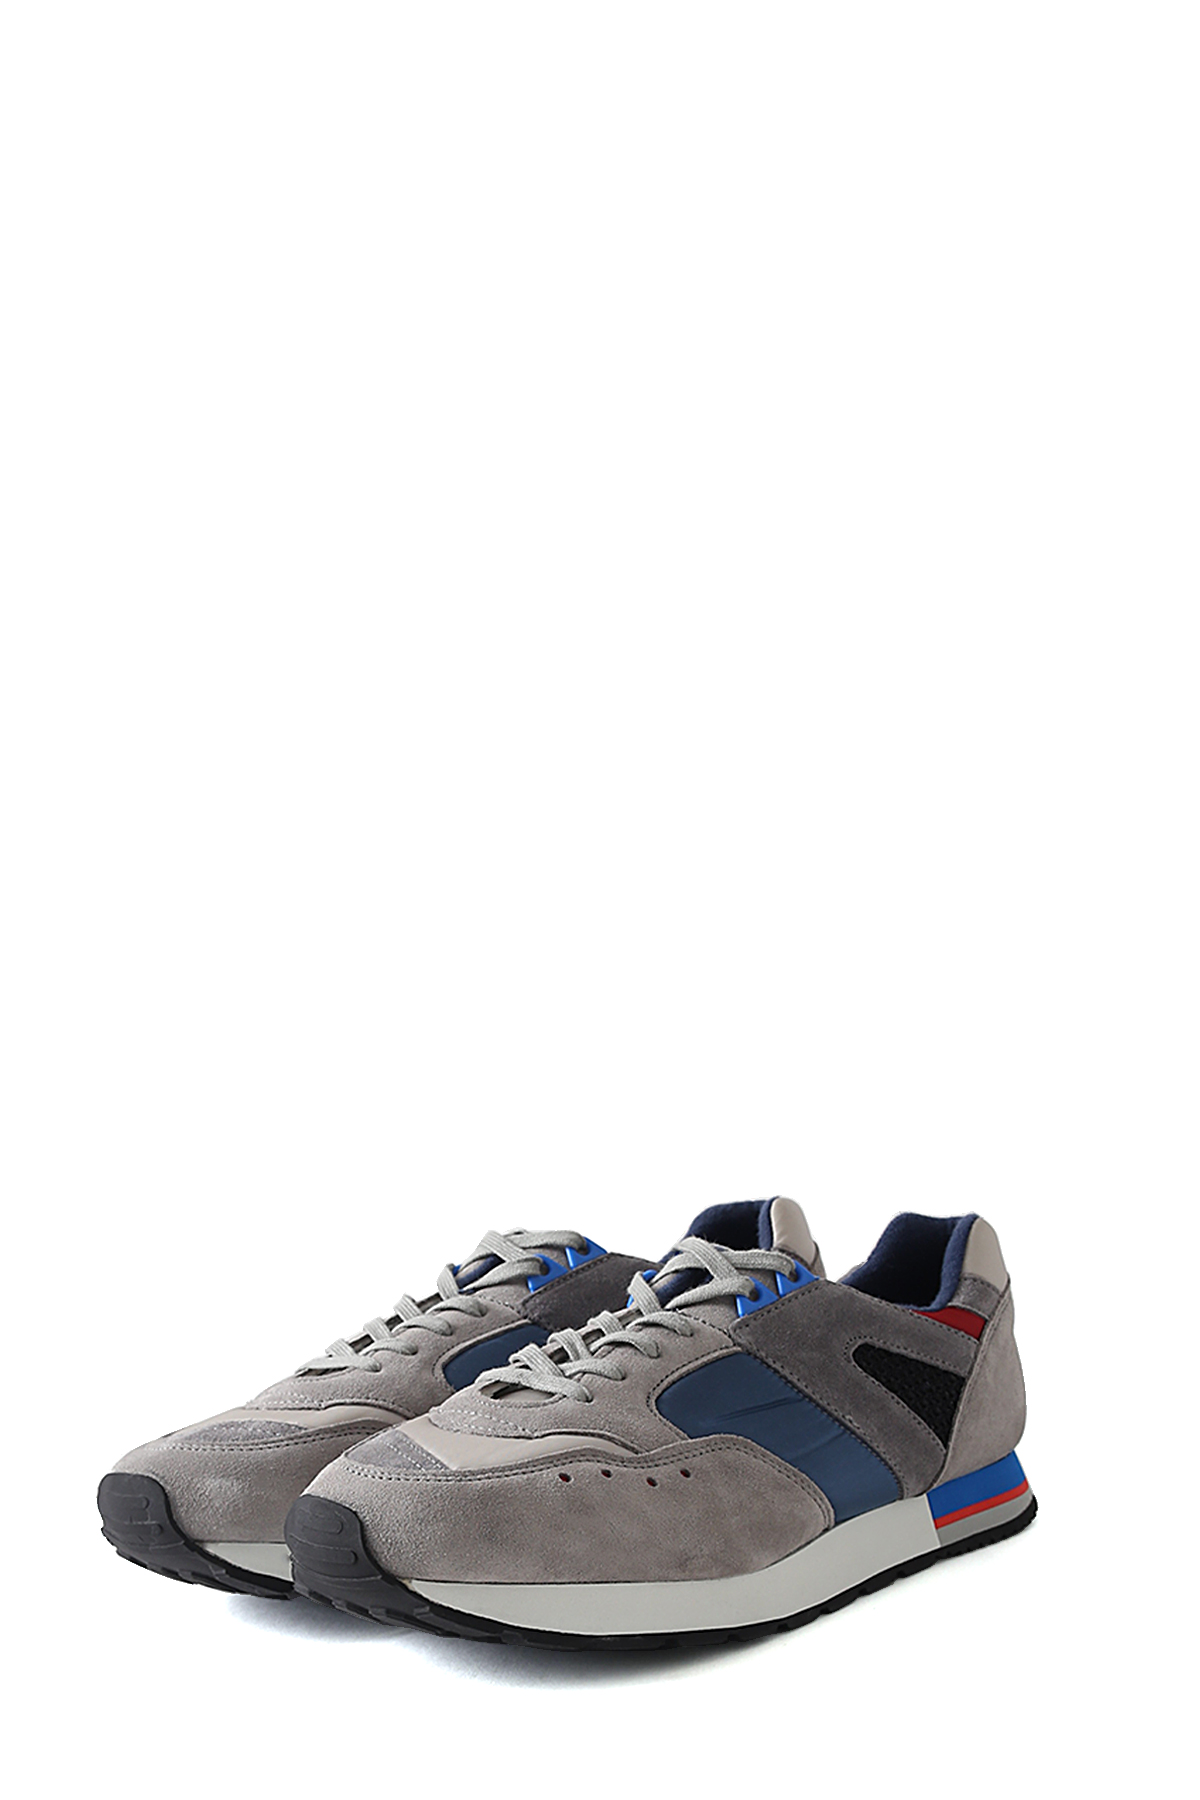 REPRODUCTION OF FOUND : French Military Trainer (Grey)